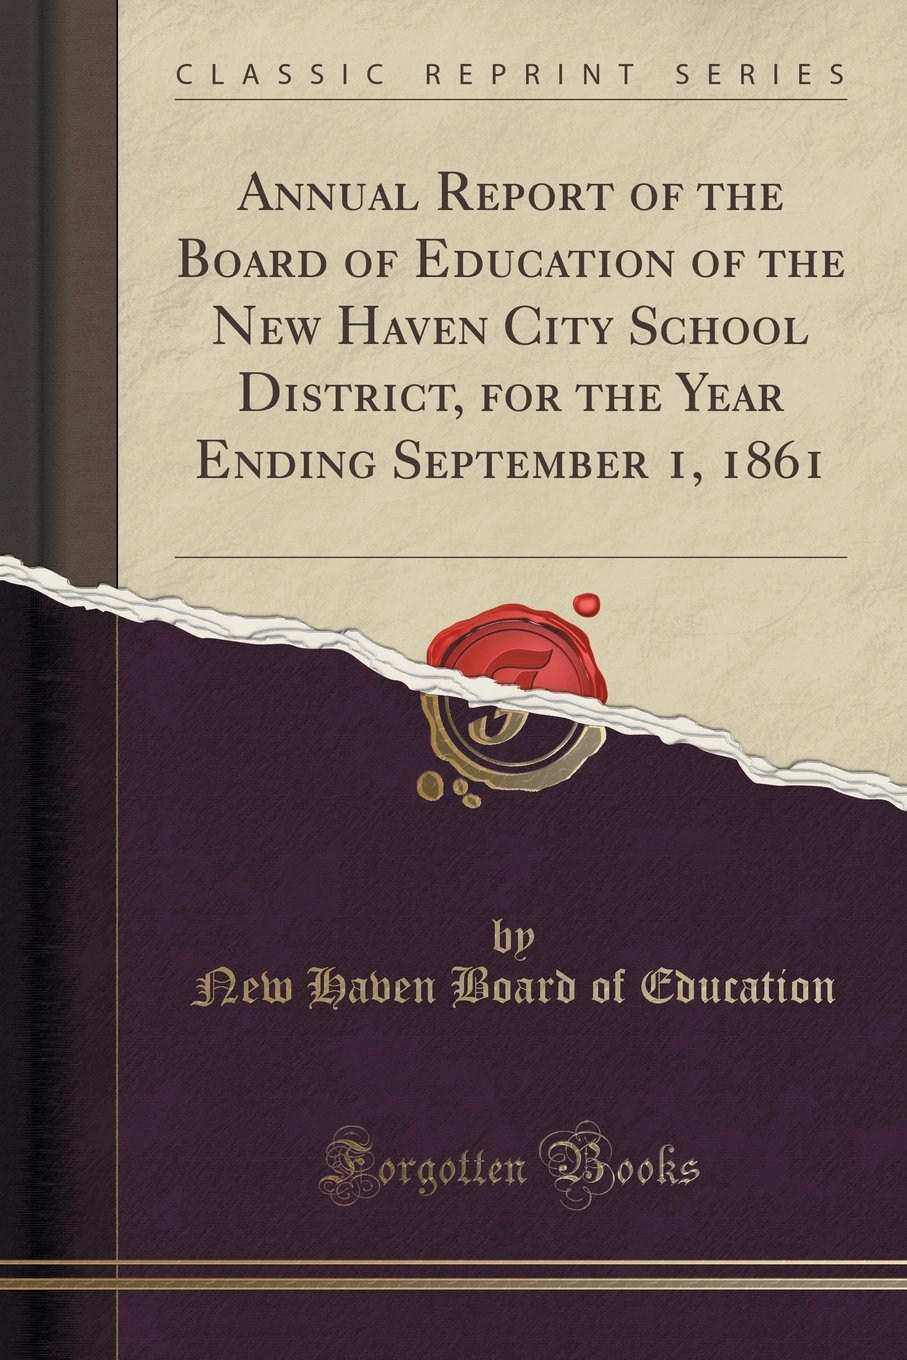 Annual Report of the Board of Education of the New Haven City School District, for the Year Ending September 1, 1861 (Classic Reprint) ebook